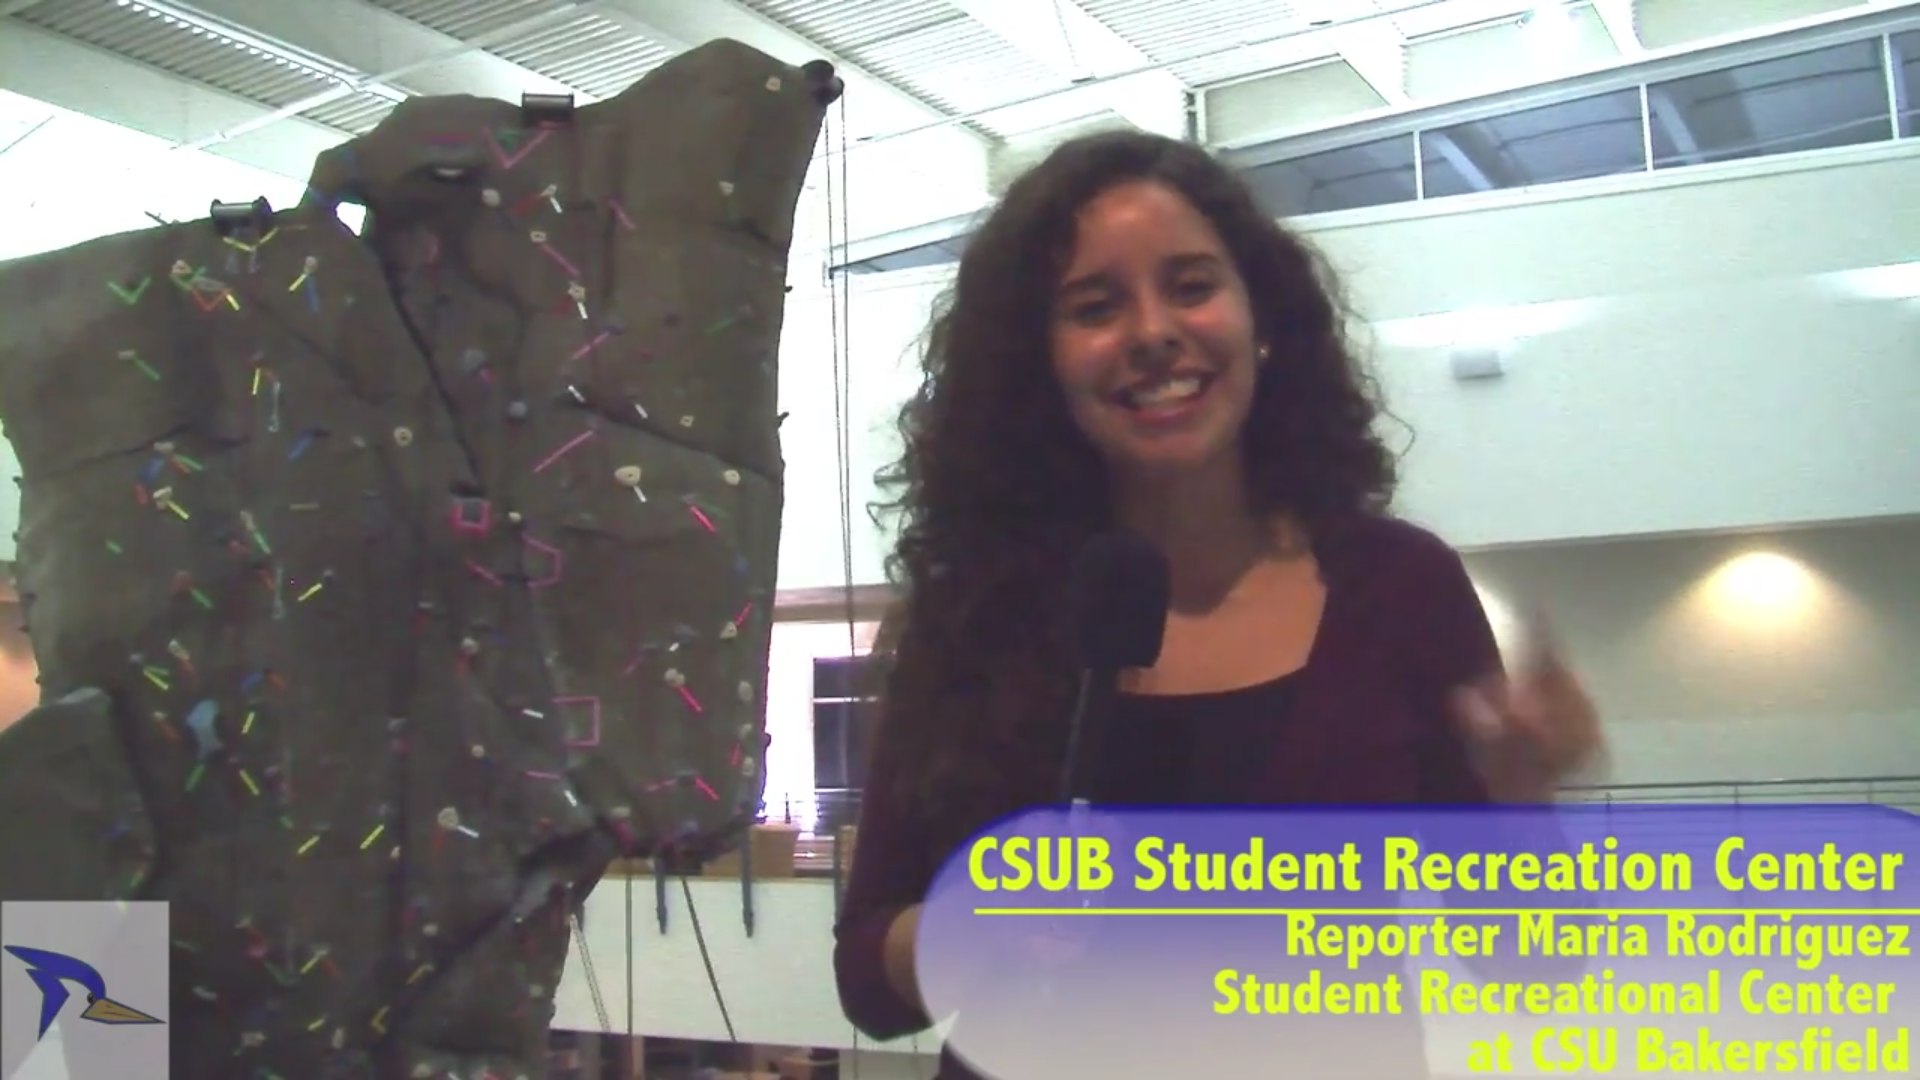 CSUB Student Recreation Center